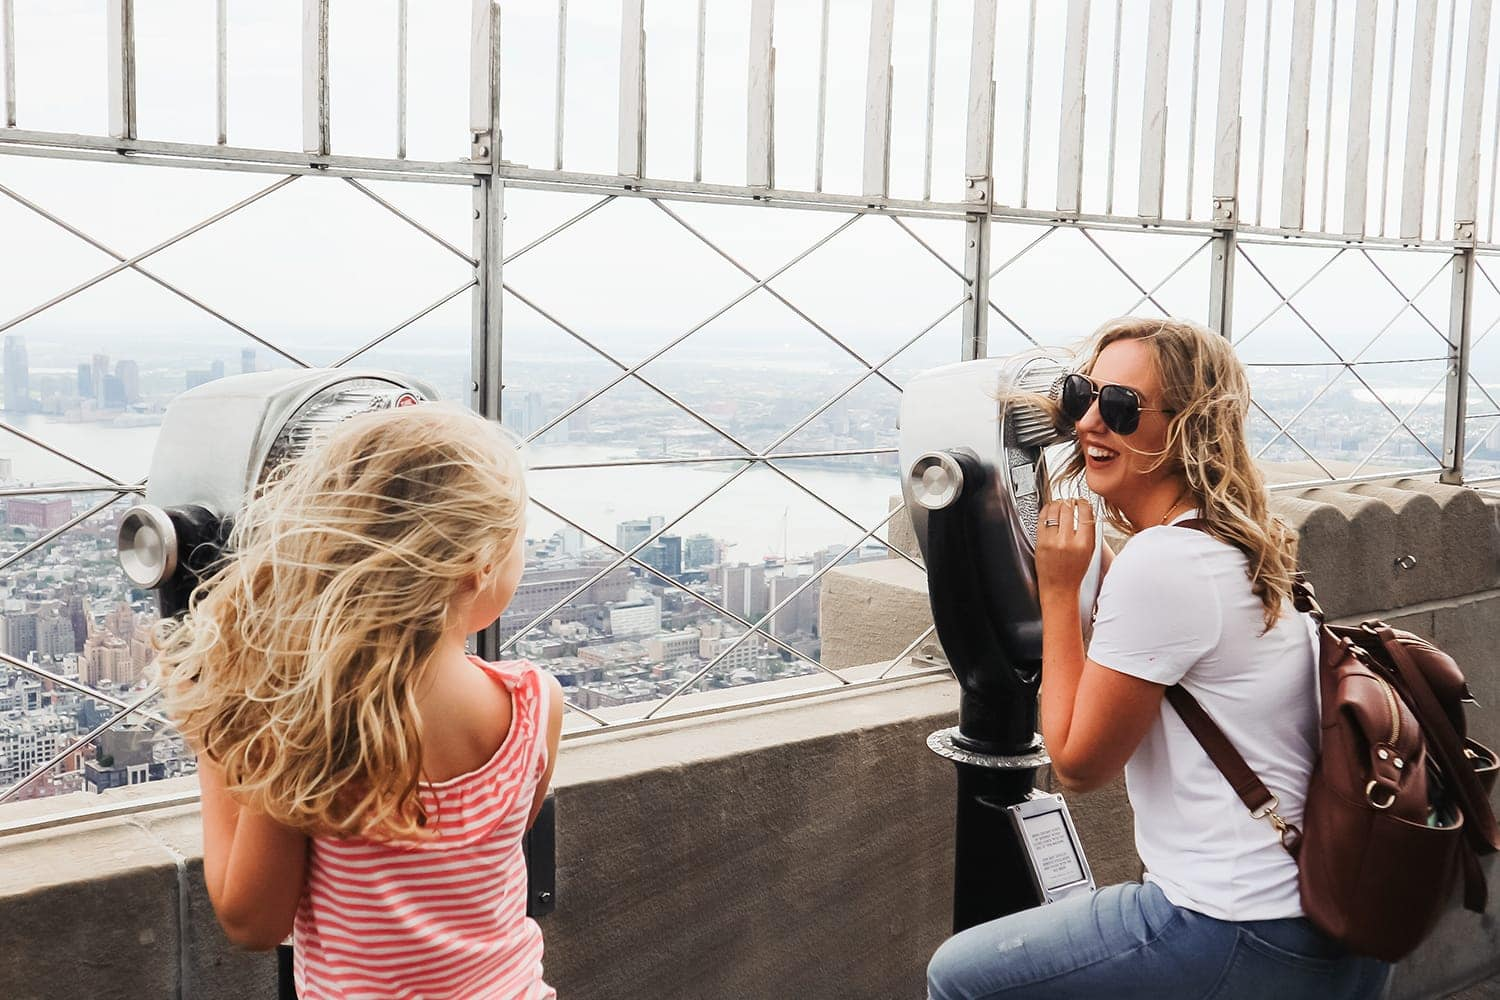 Top things to do in New York City with kids - Empire State Building - travel guide written by Houston blogger Meg O. on the Go